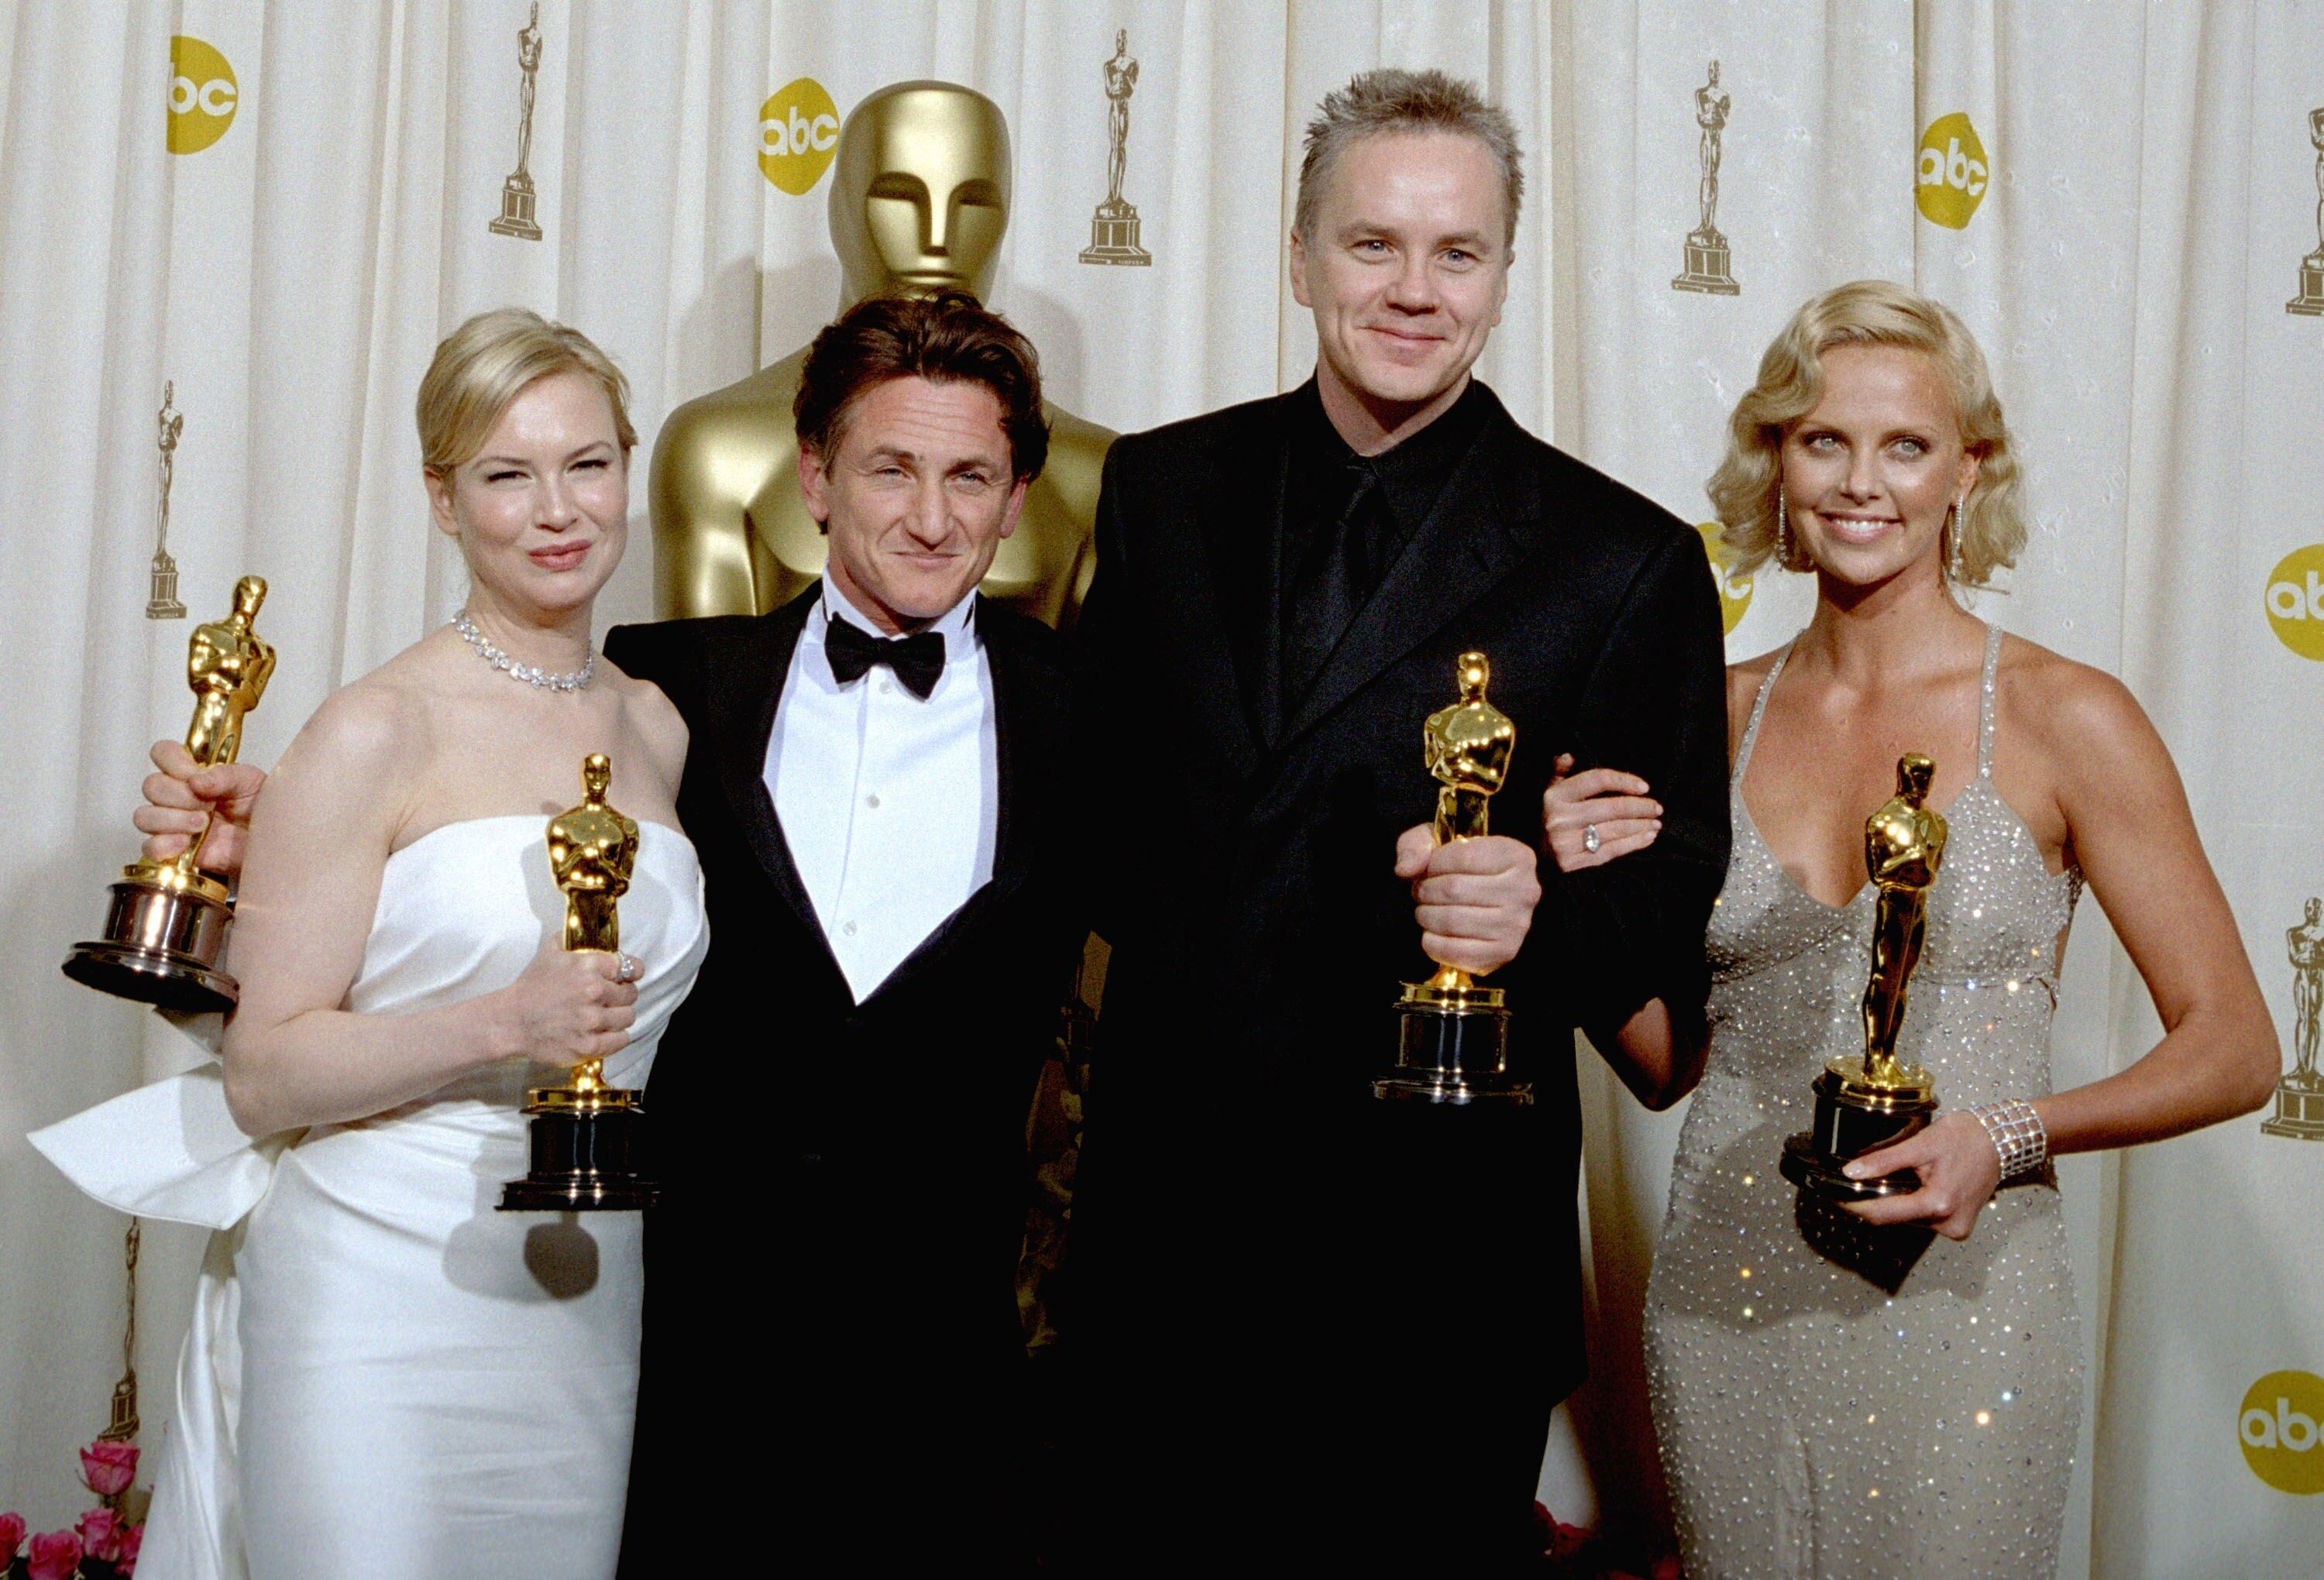 Renee Zellweger, Sean Penn, Tim Robbins, and Charlize Theron.